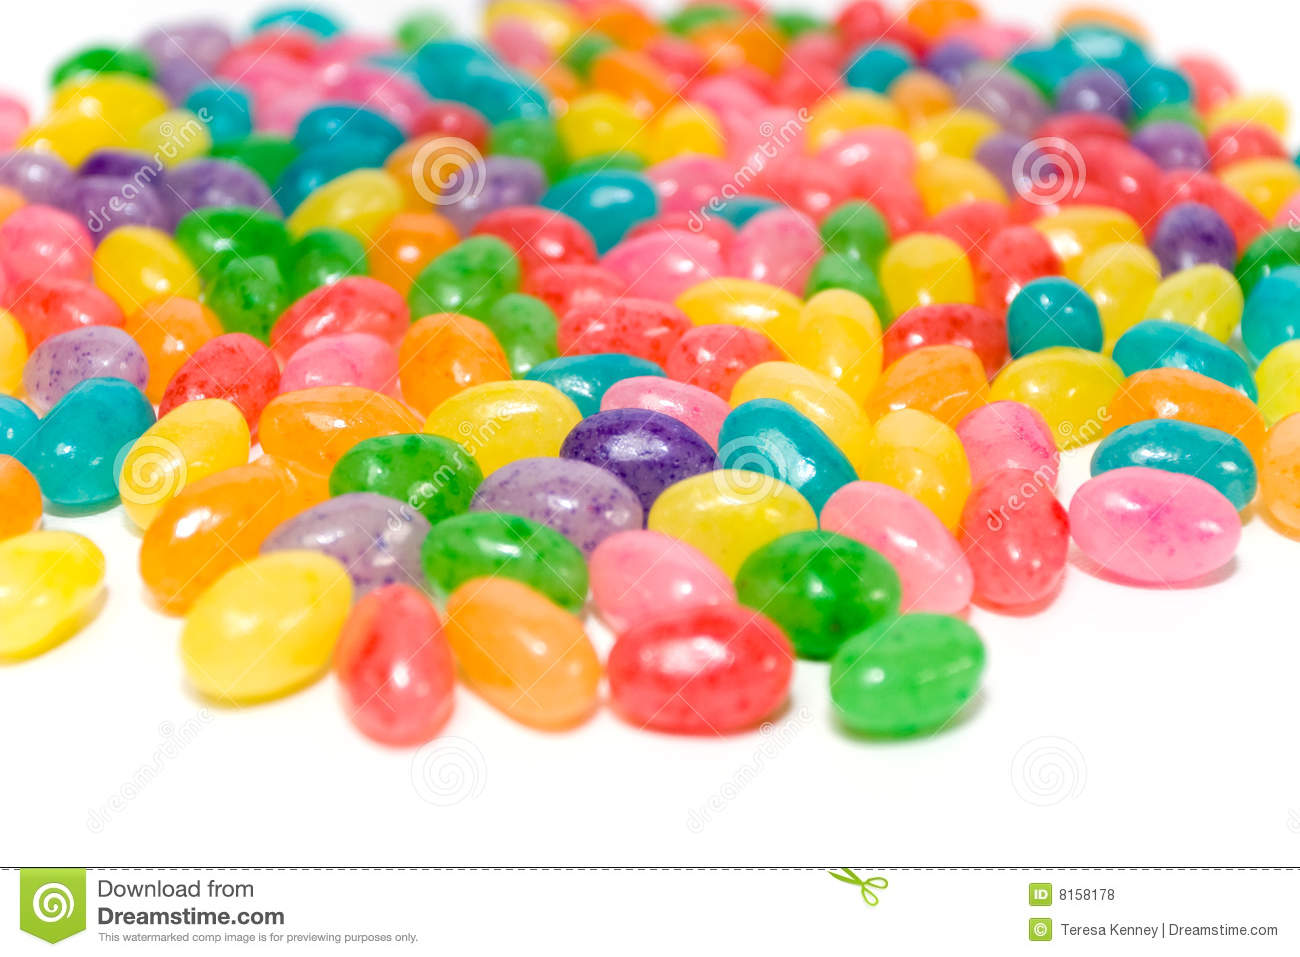 Bright Colored Marbles : Brightly colored marbles royalty free stock photo